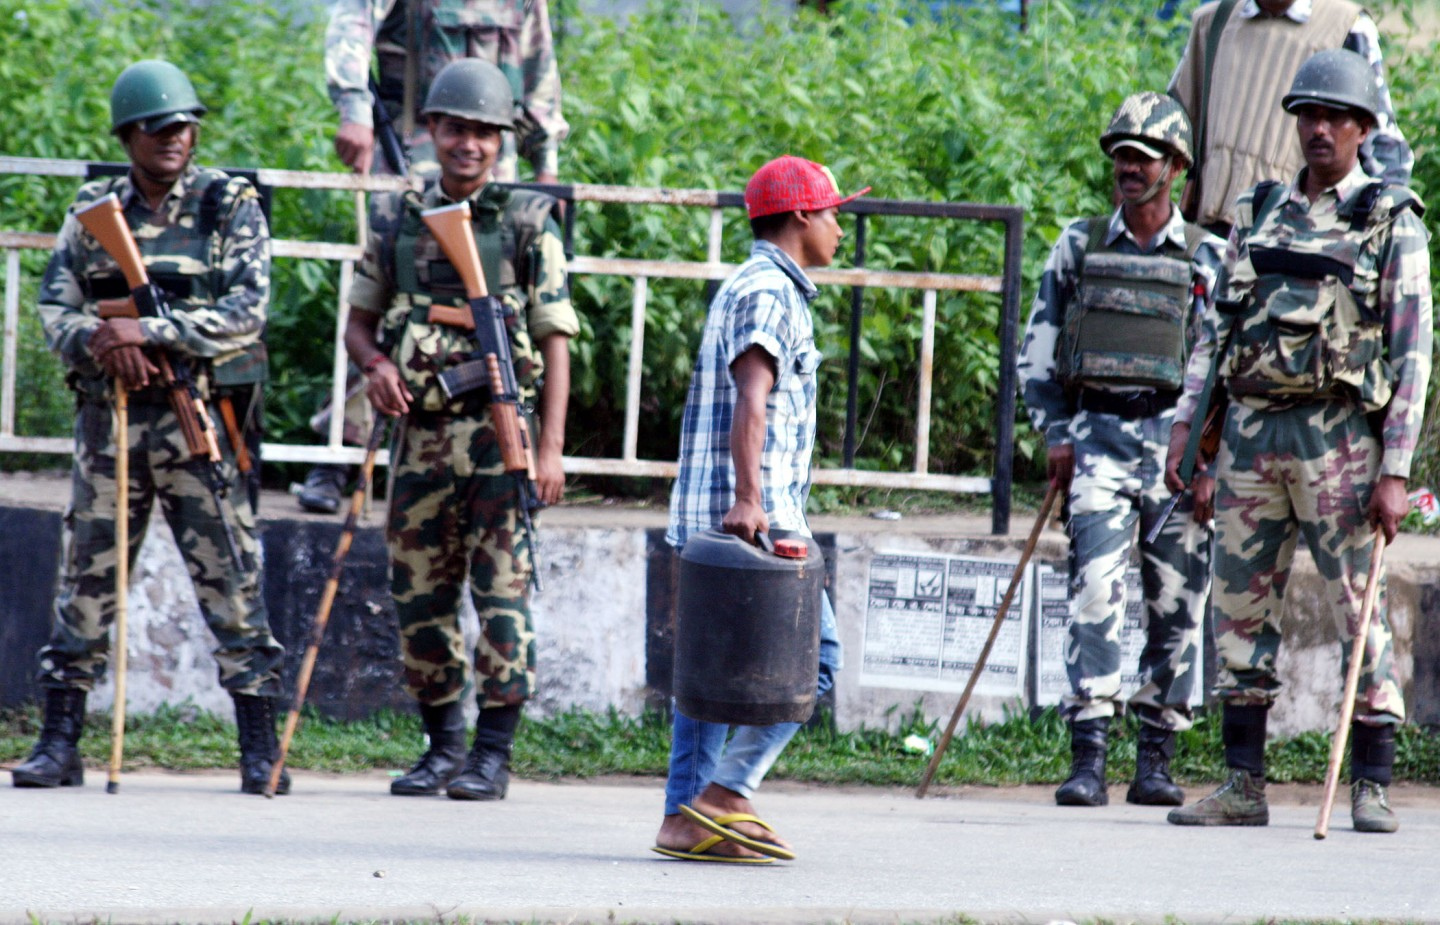 Indian soldiers of the CRPF Team and Assam police officers secure a street, as a Boy carries a Foul, during Garo National Council (GNC) Indefinite Bandh, Monday, In Paikan NH-51 and NH-37. (Pictures by Vishma Thapa)